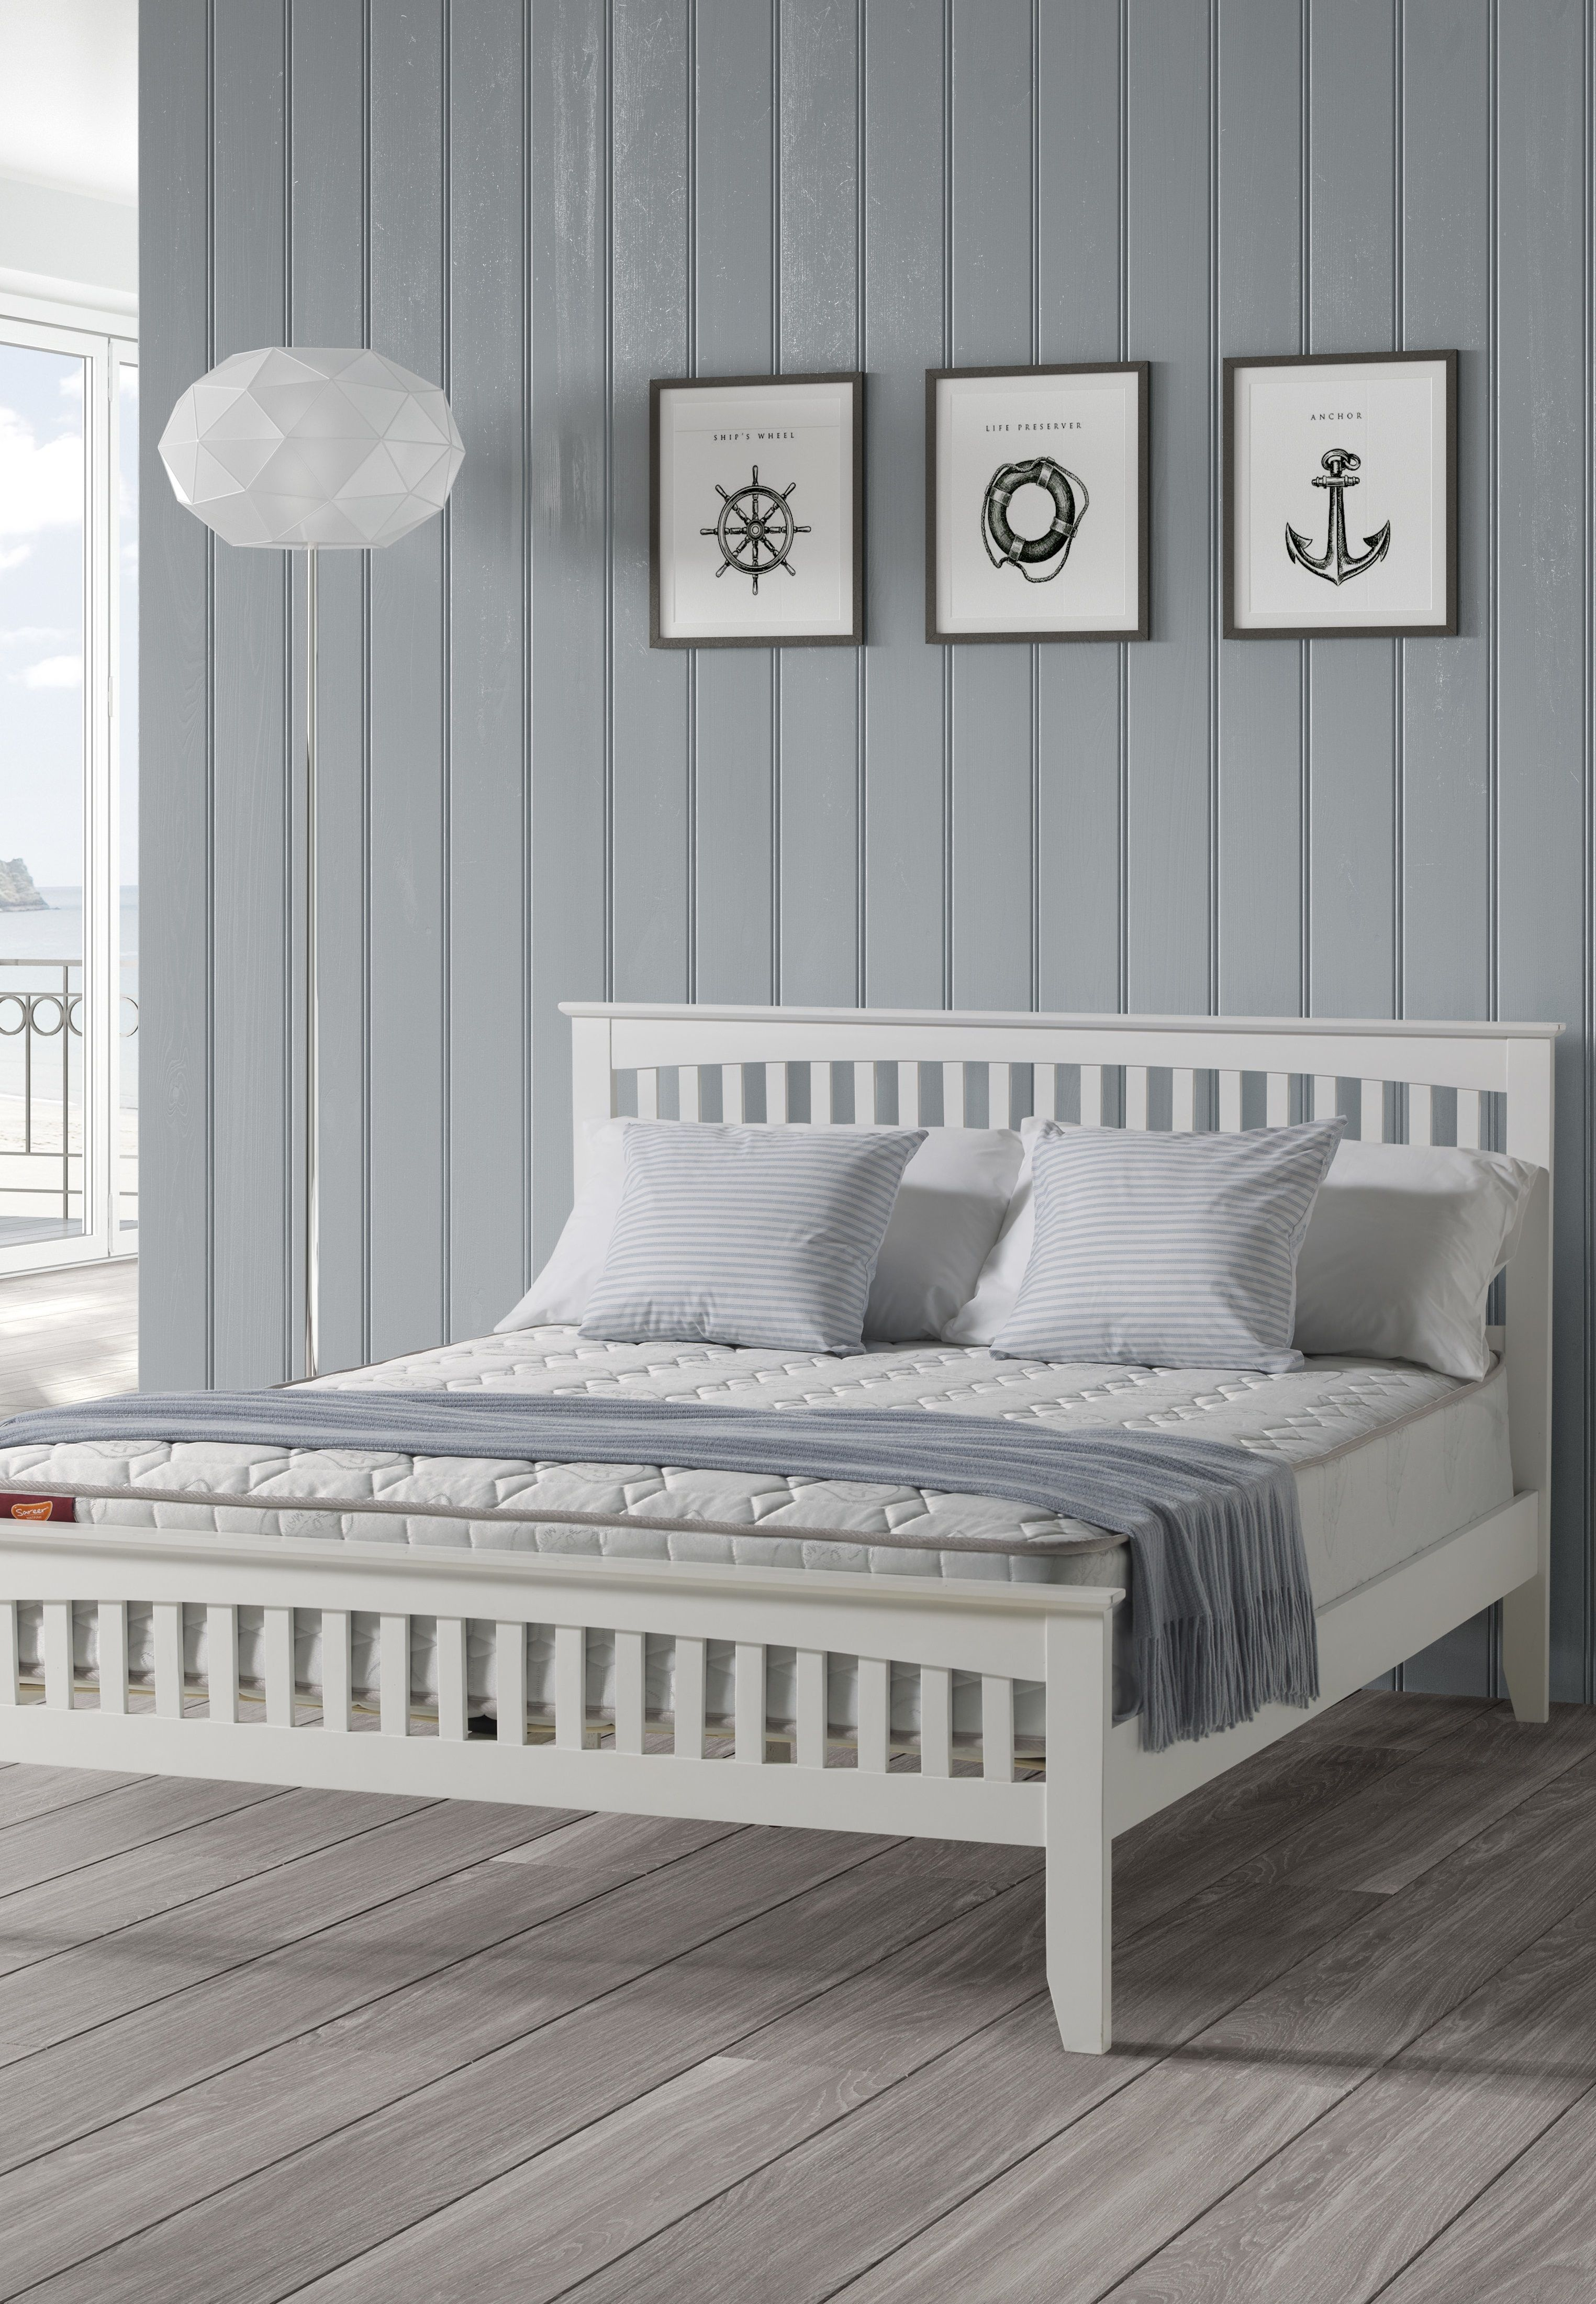 Three Posts Alyn Bed Frame Wayfair Co Uk White Wooden Bed White Bed Frame Wooden Bed